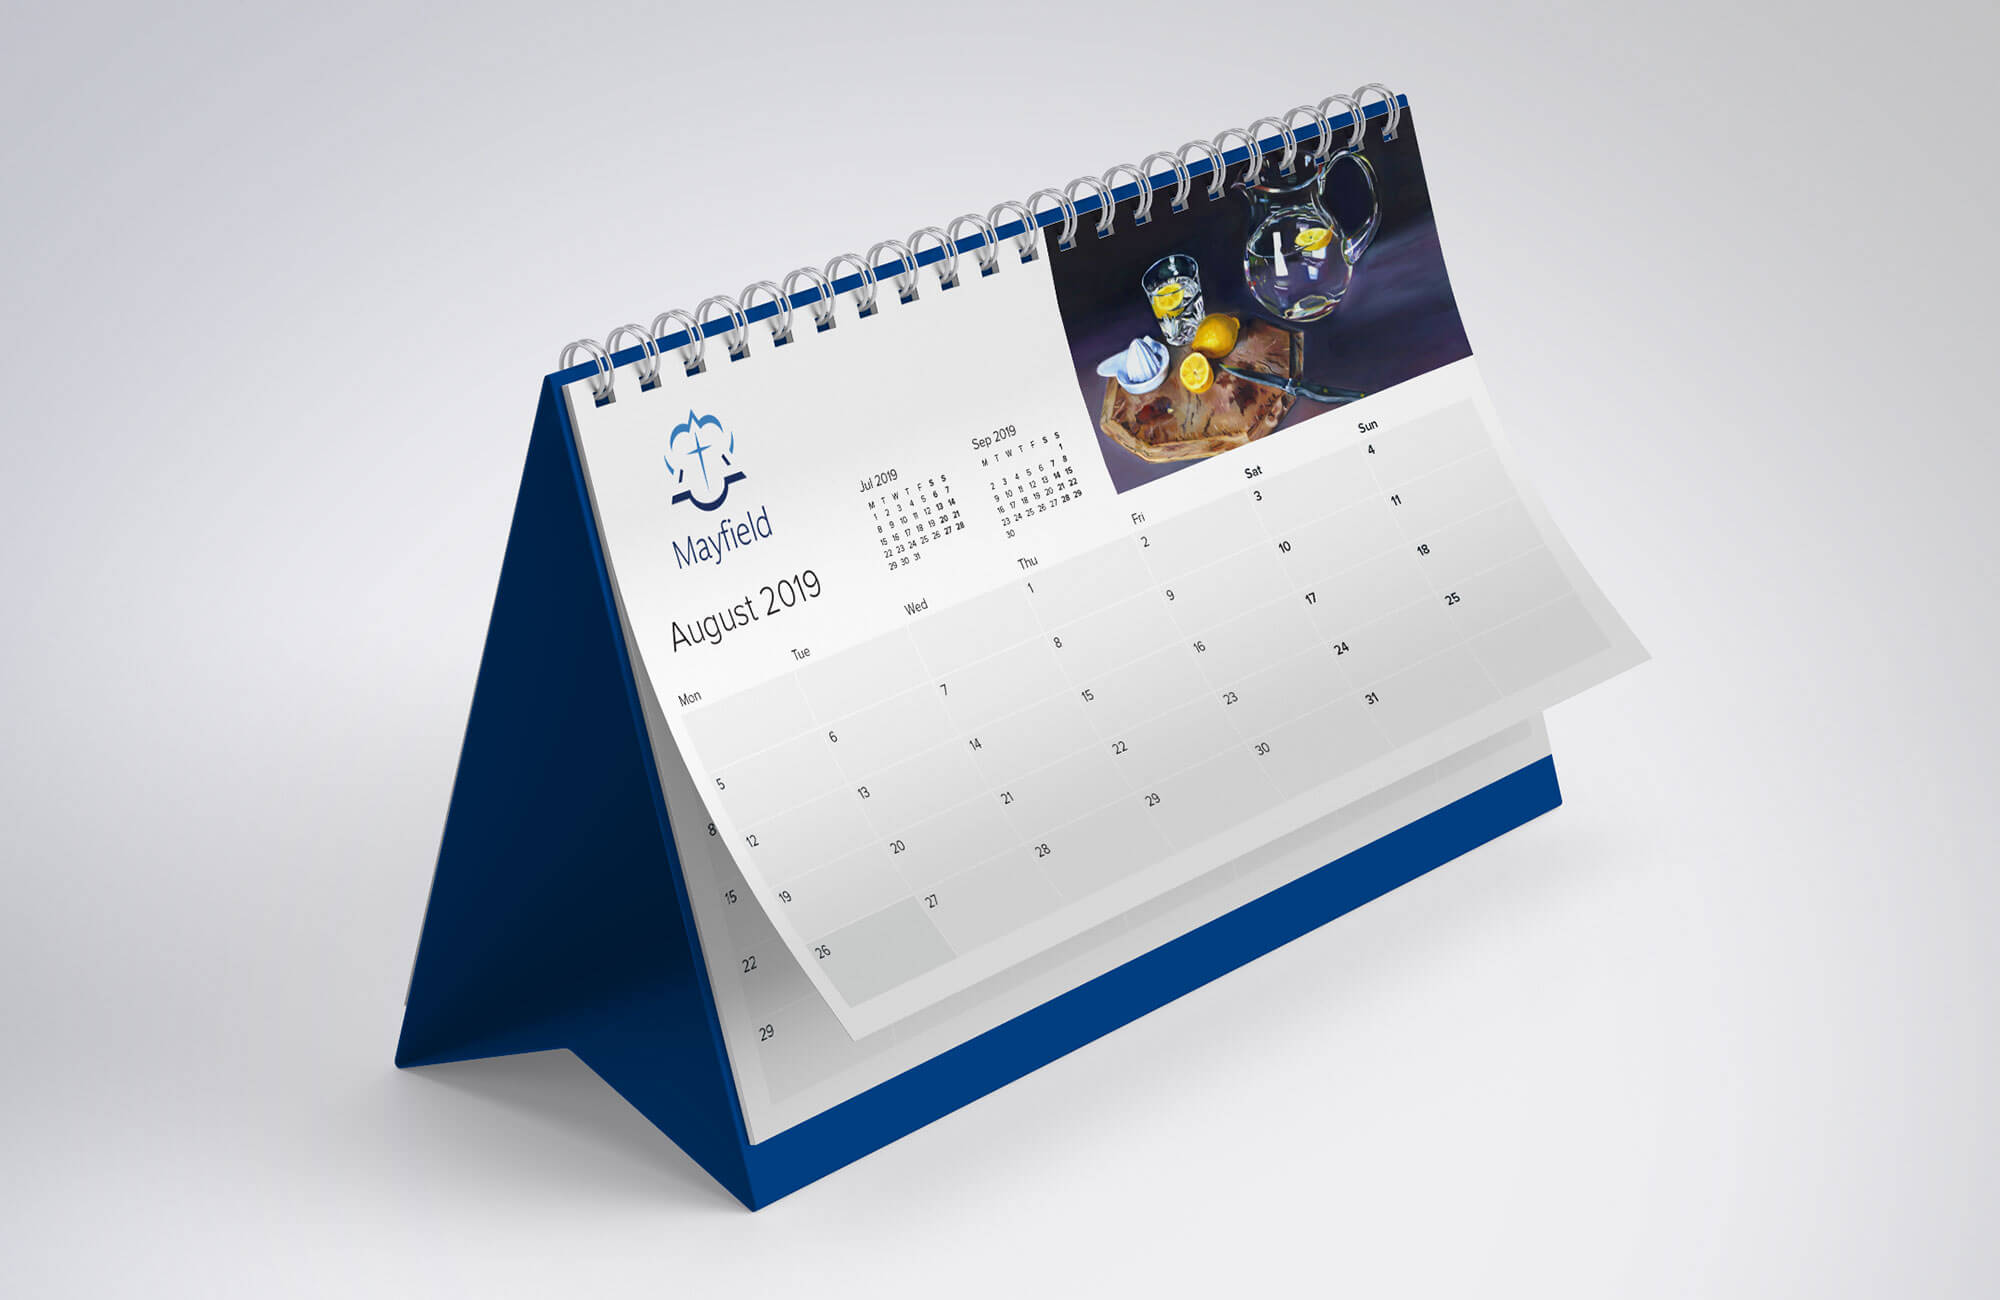 Mayfield School Desk Calendar Design & Print